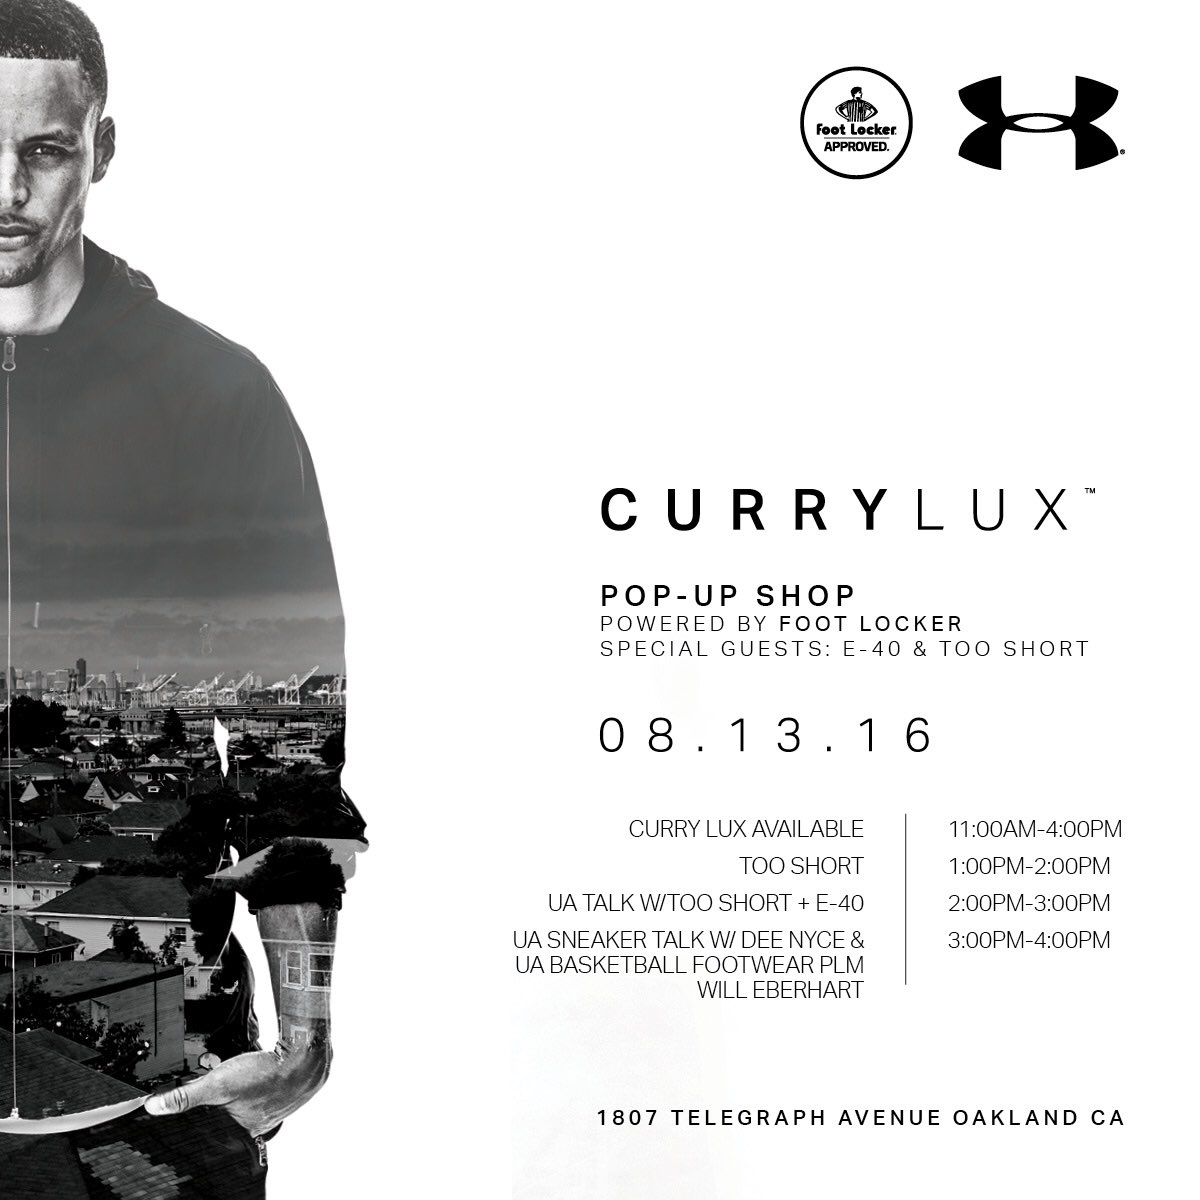 17606cd2f88b oakland experience the foot locker x under armour curry lux pop up shop  featuring special guests